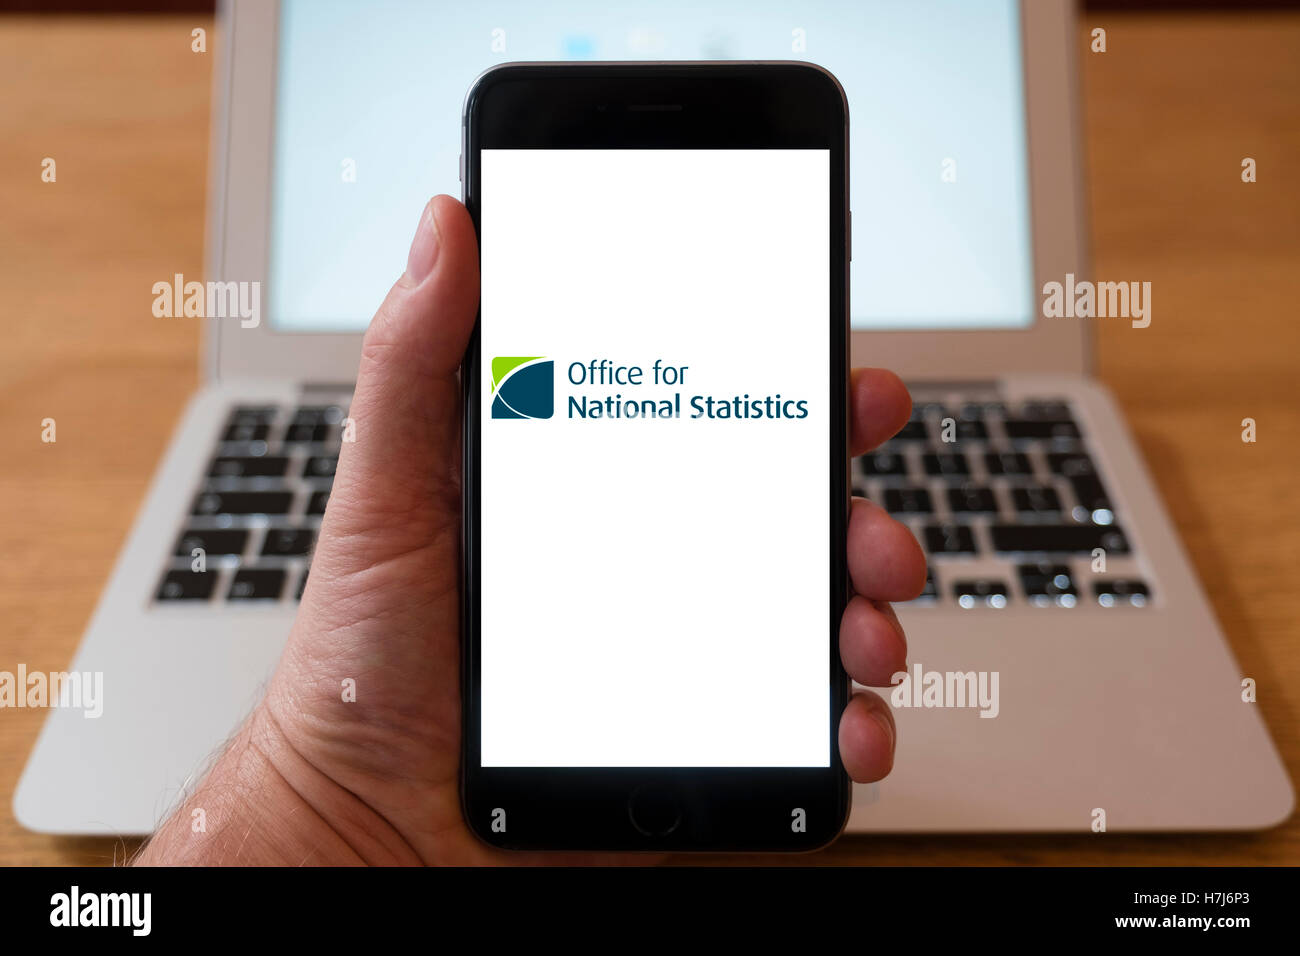 Using iPhone smart phone to display logo of the Office for National Statistics - Stock Image